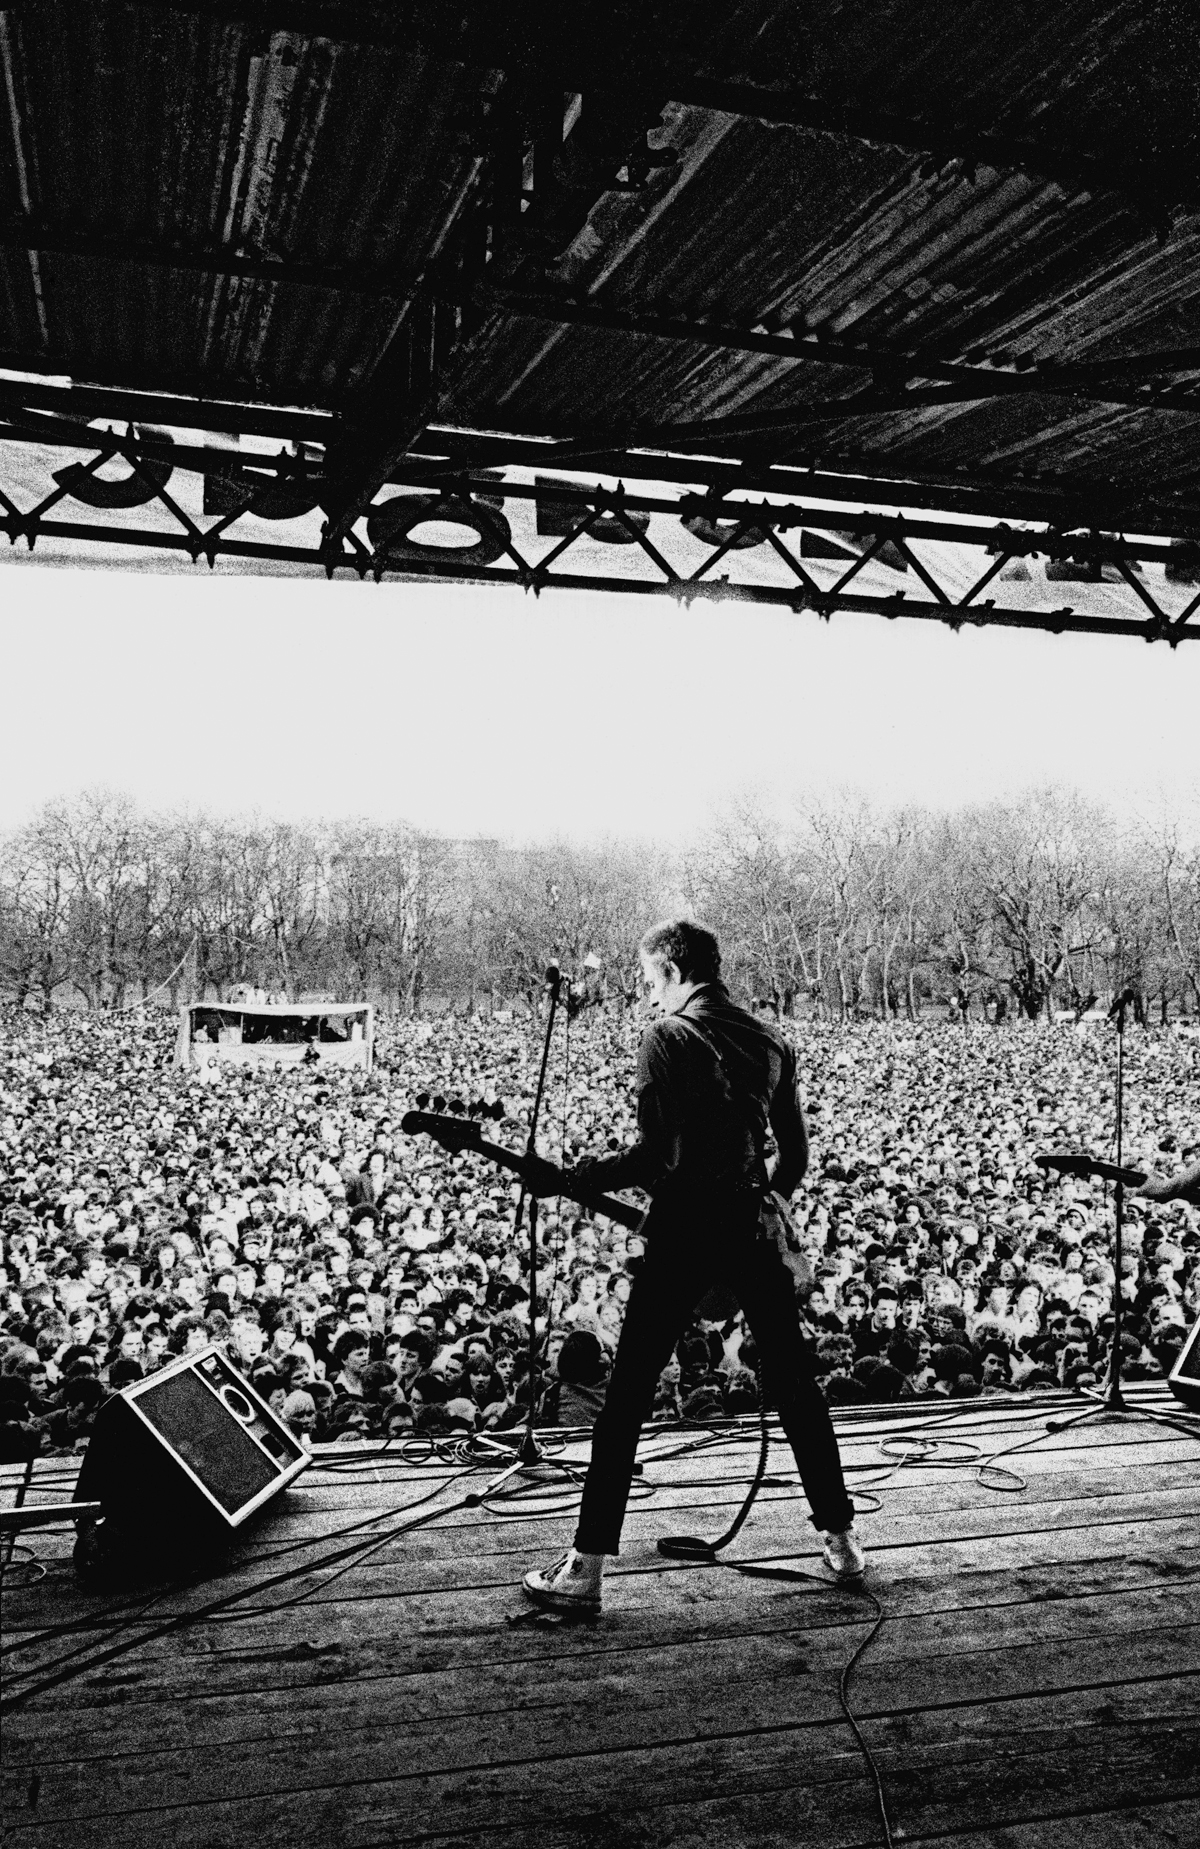 Paul Simonon, The Clash, Victoria Park 30 April, 1978